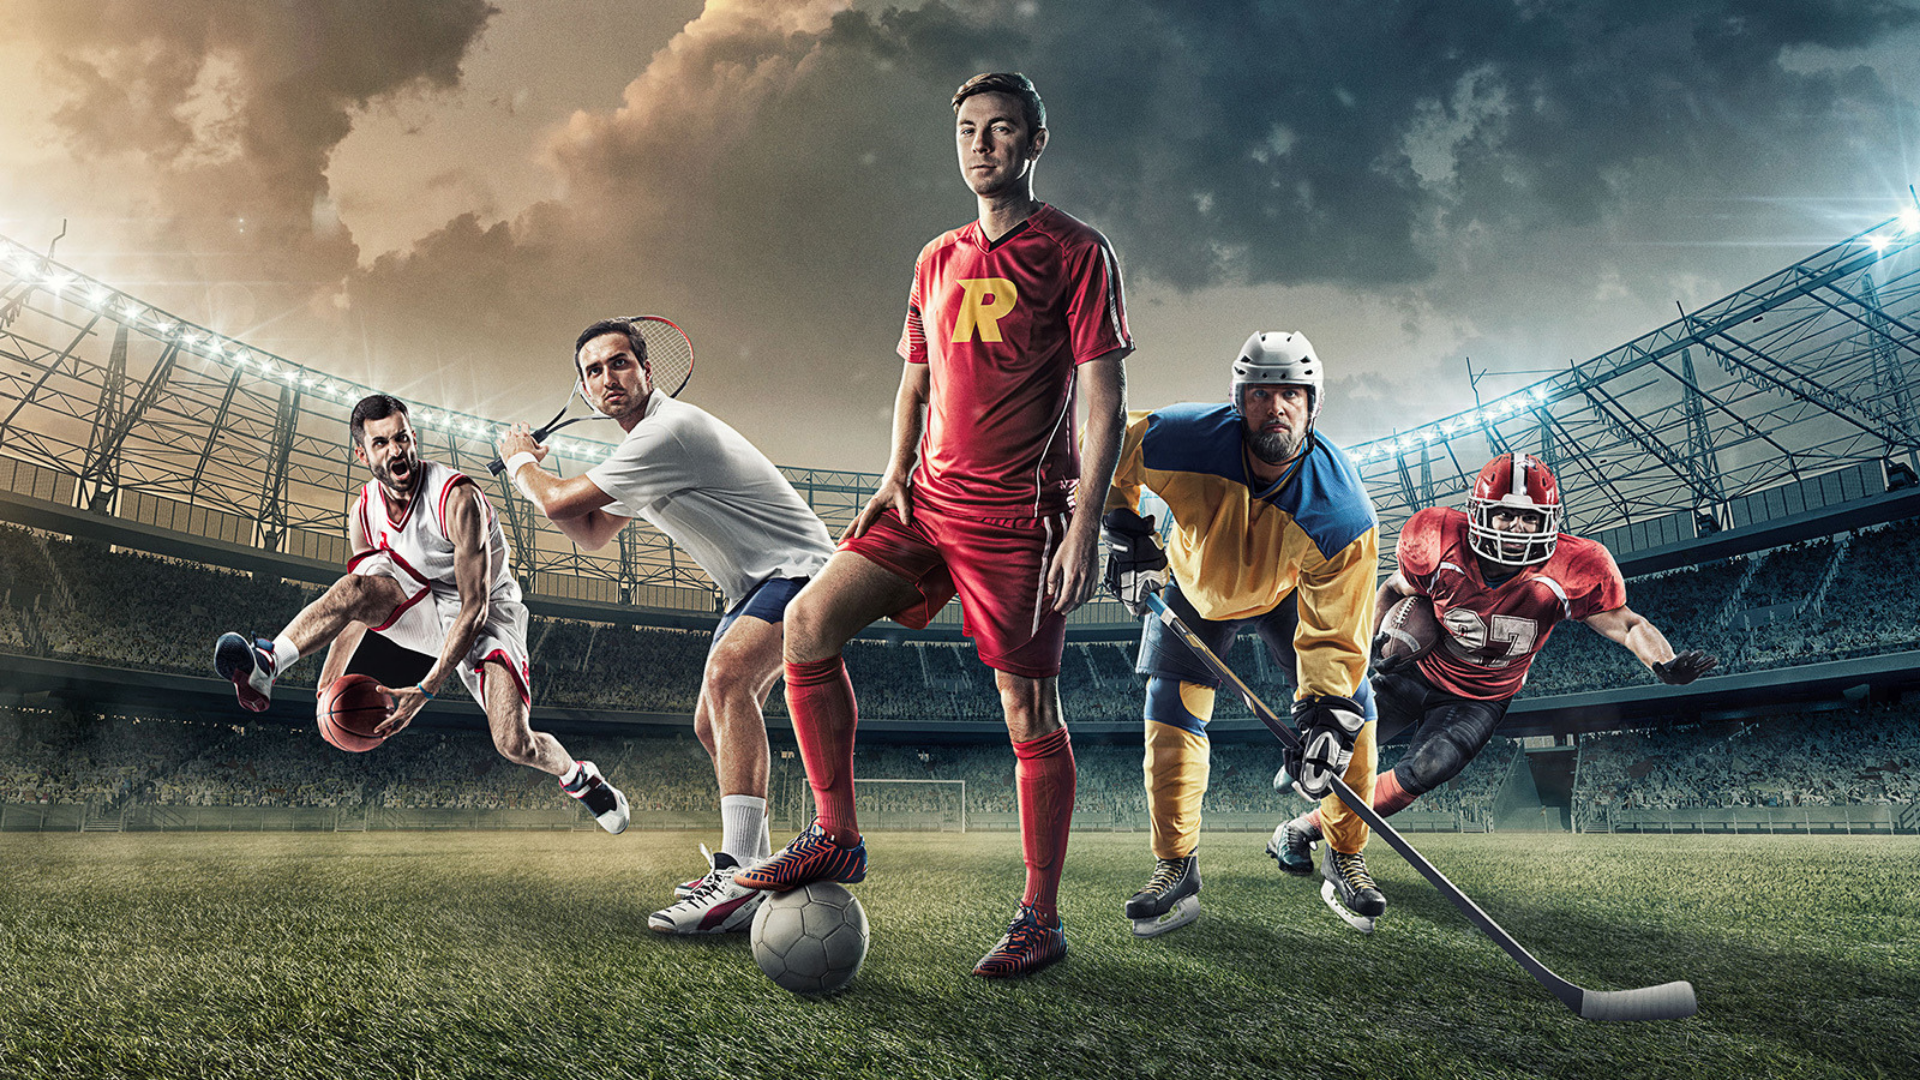 at online sportsbook online betting bet sports